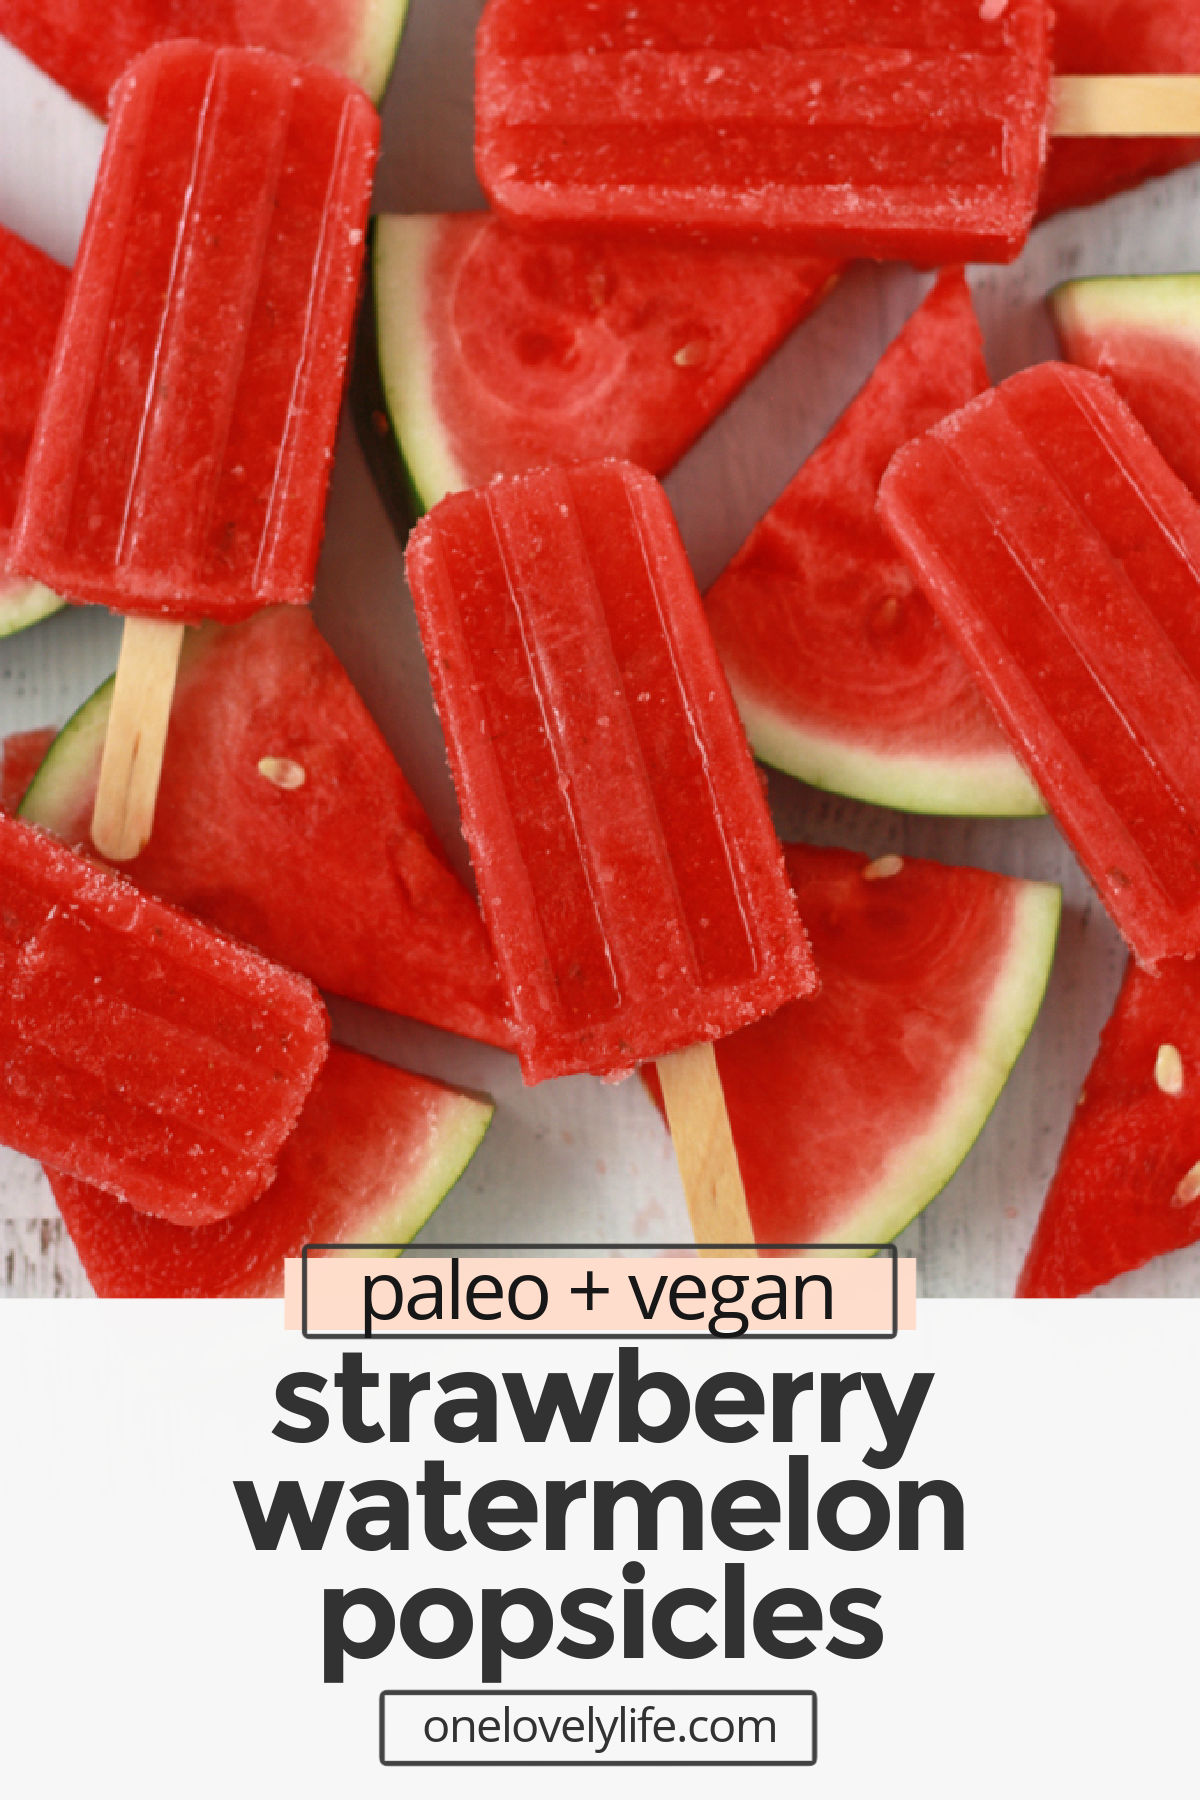 Strawberry Watermelon Popsicles are a fresh, bright, healthy warm weather treat! They're 100% fruit and naturally help balance your electrolytes. (Vegan & paleo) // healthy popsicles // strawberry popsicles // watermelon popsicles // paleo popsicles // vegan popsicles // naturally sweetened // healthy snack // #healthy #popsicles #icepops #paleo #vegan #dessert